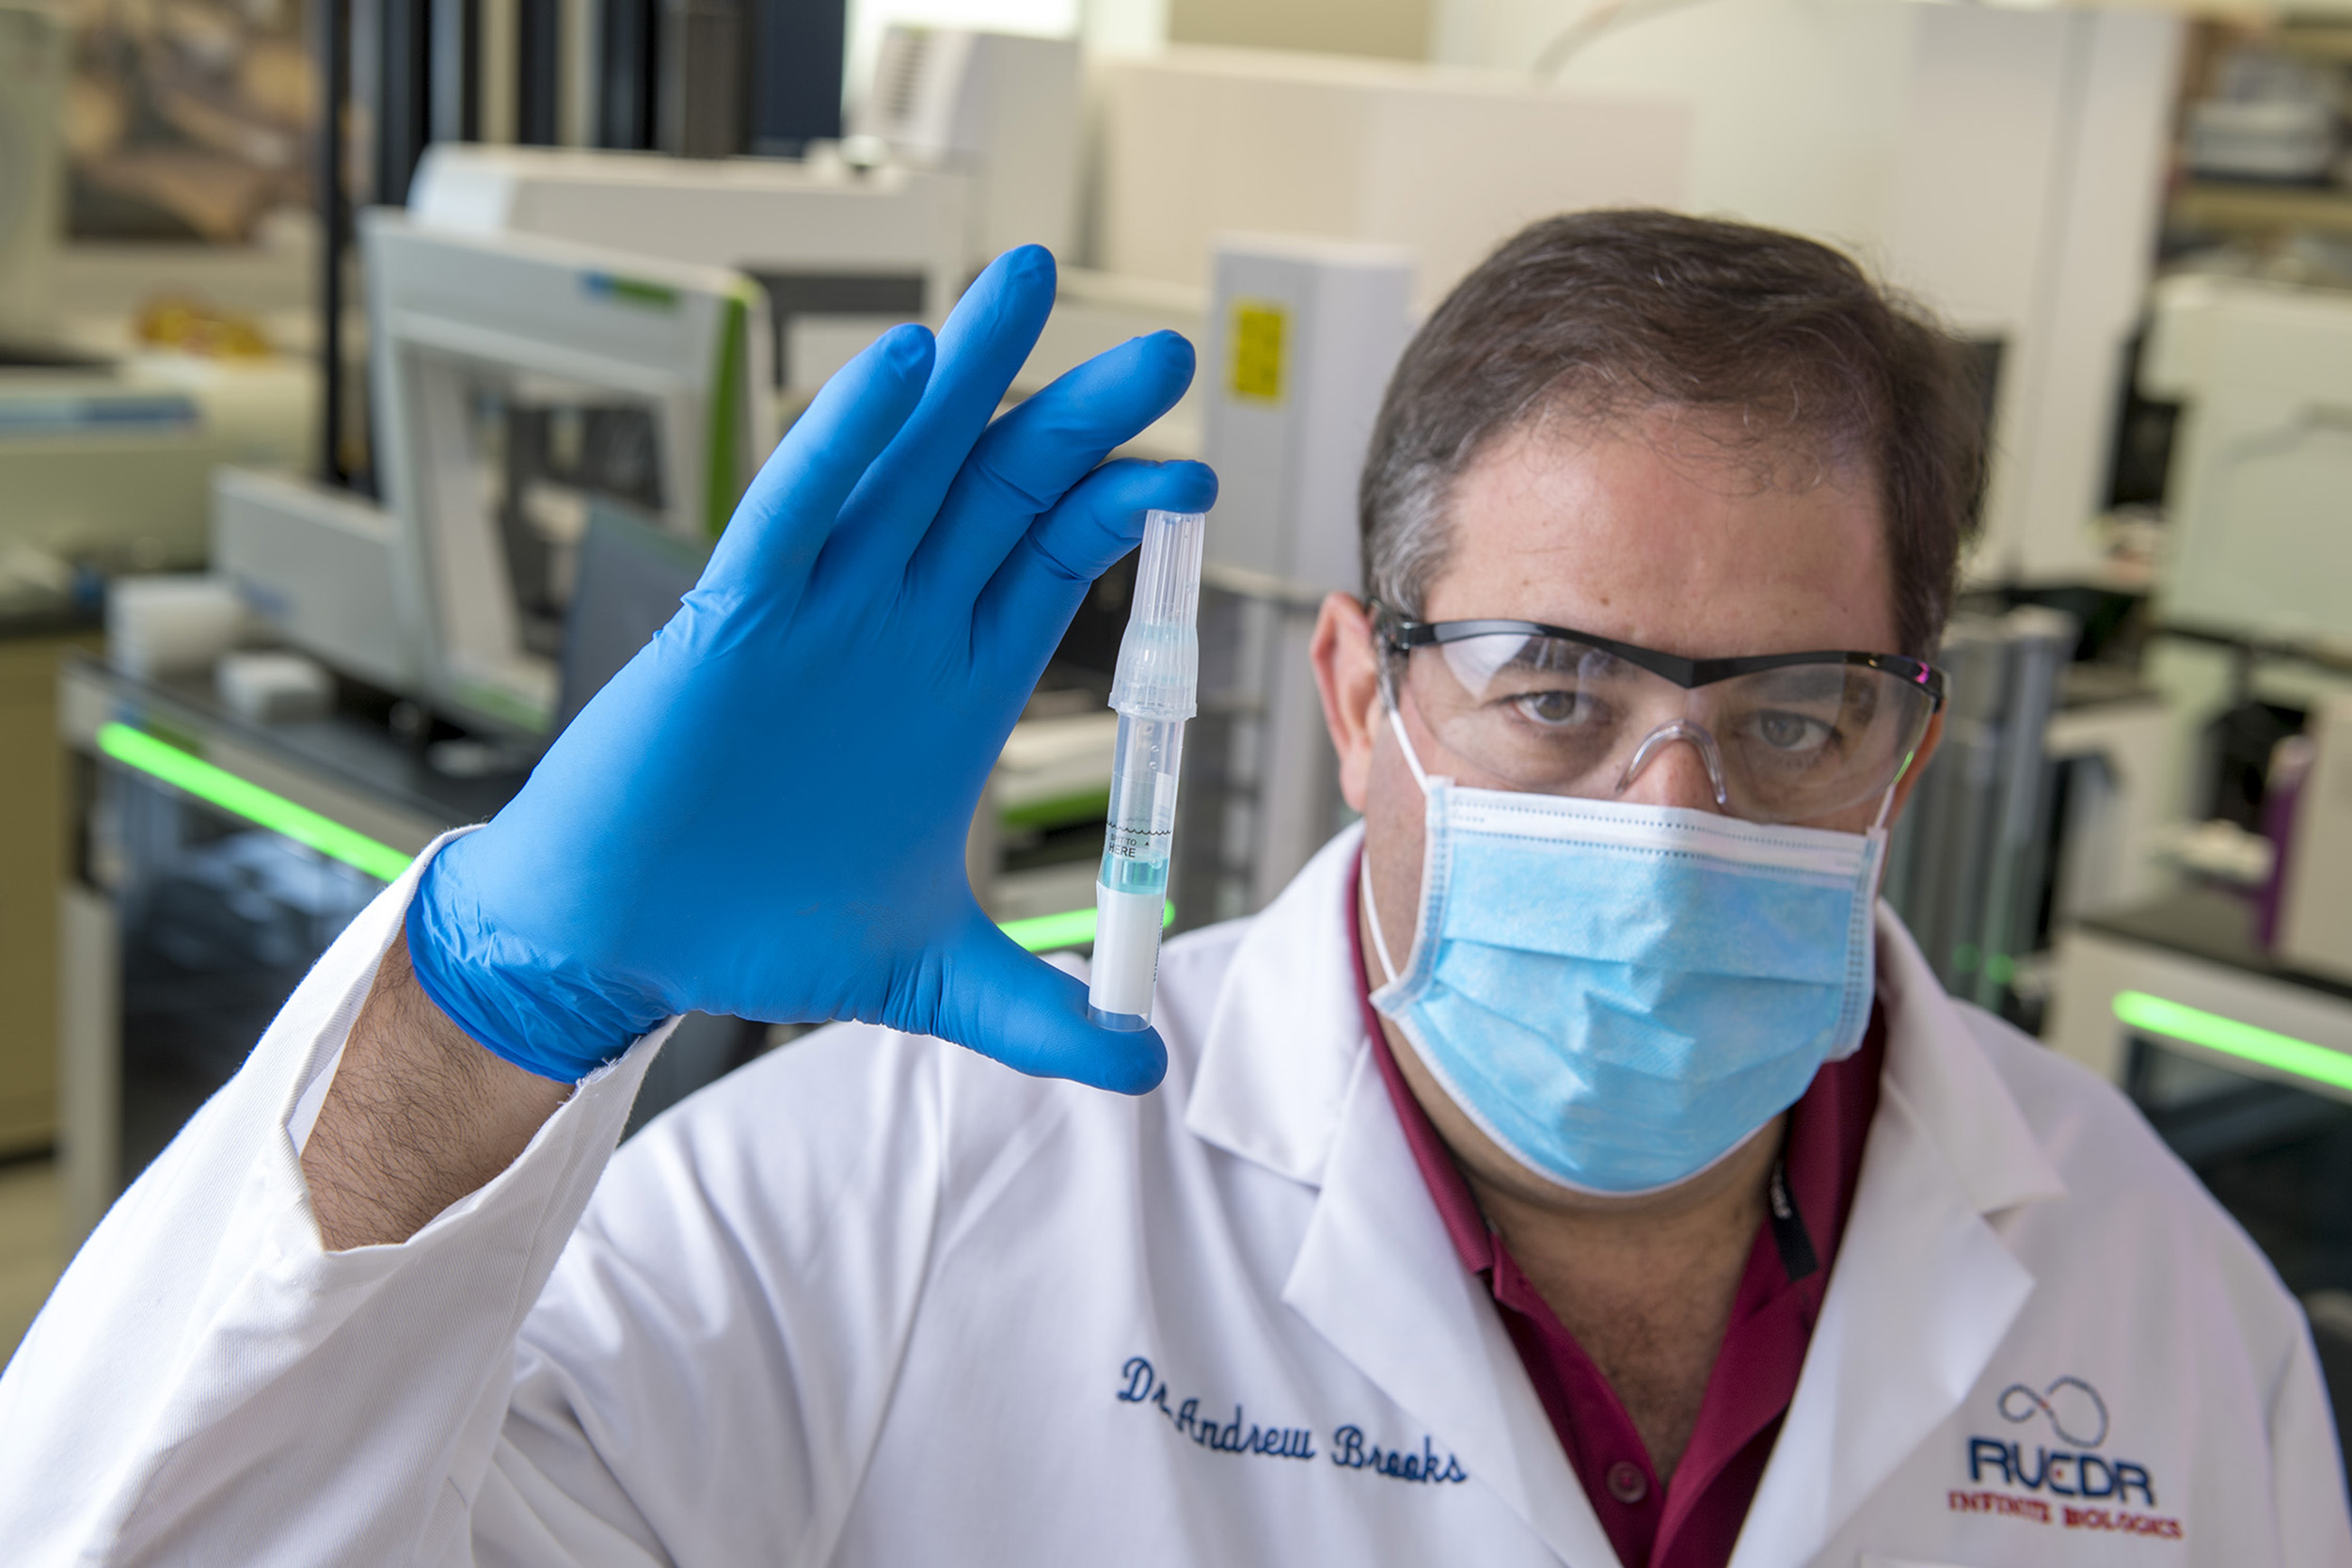 Dr. Andrew Brooks, Chief Operating Officer at RUCDR Infinite Biologics is processing Spectrum saliva collection devices